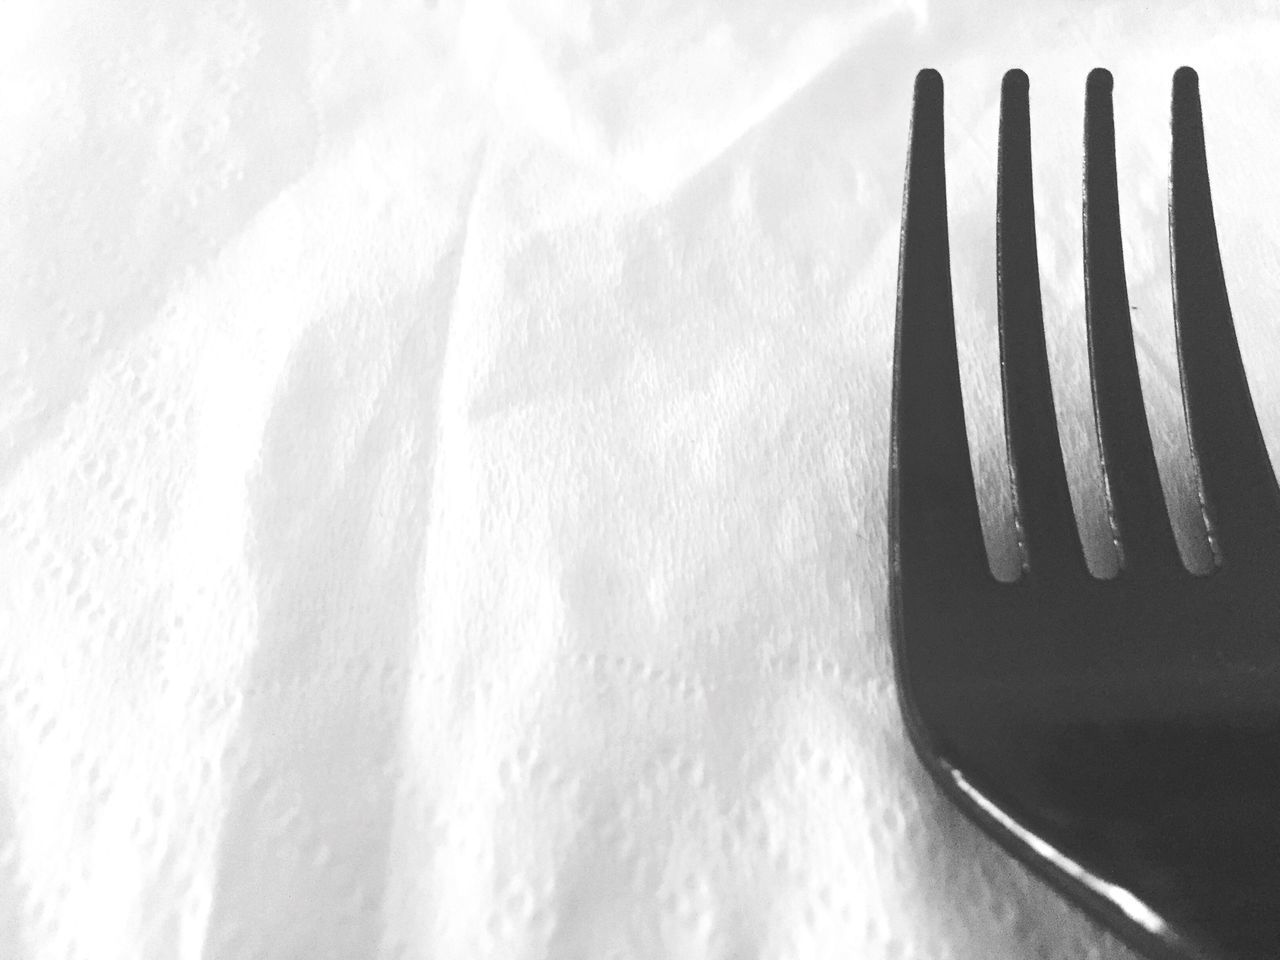 fork, no people, winter, snow, cold temperature, close-up, indoors, day, food